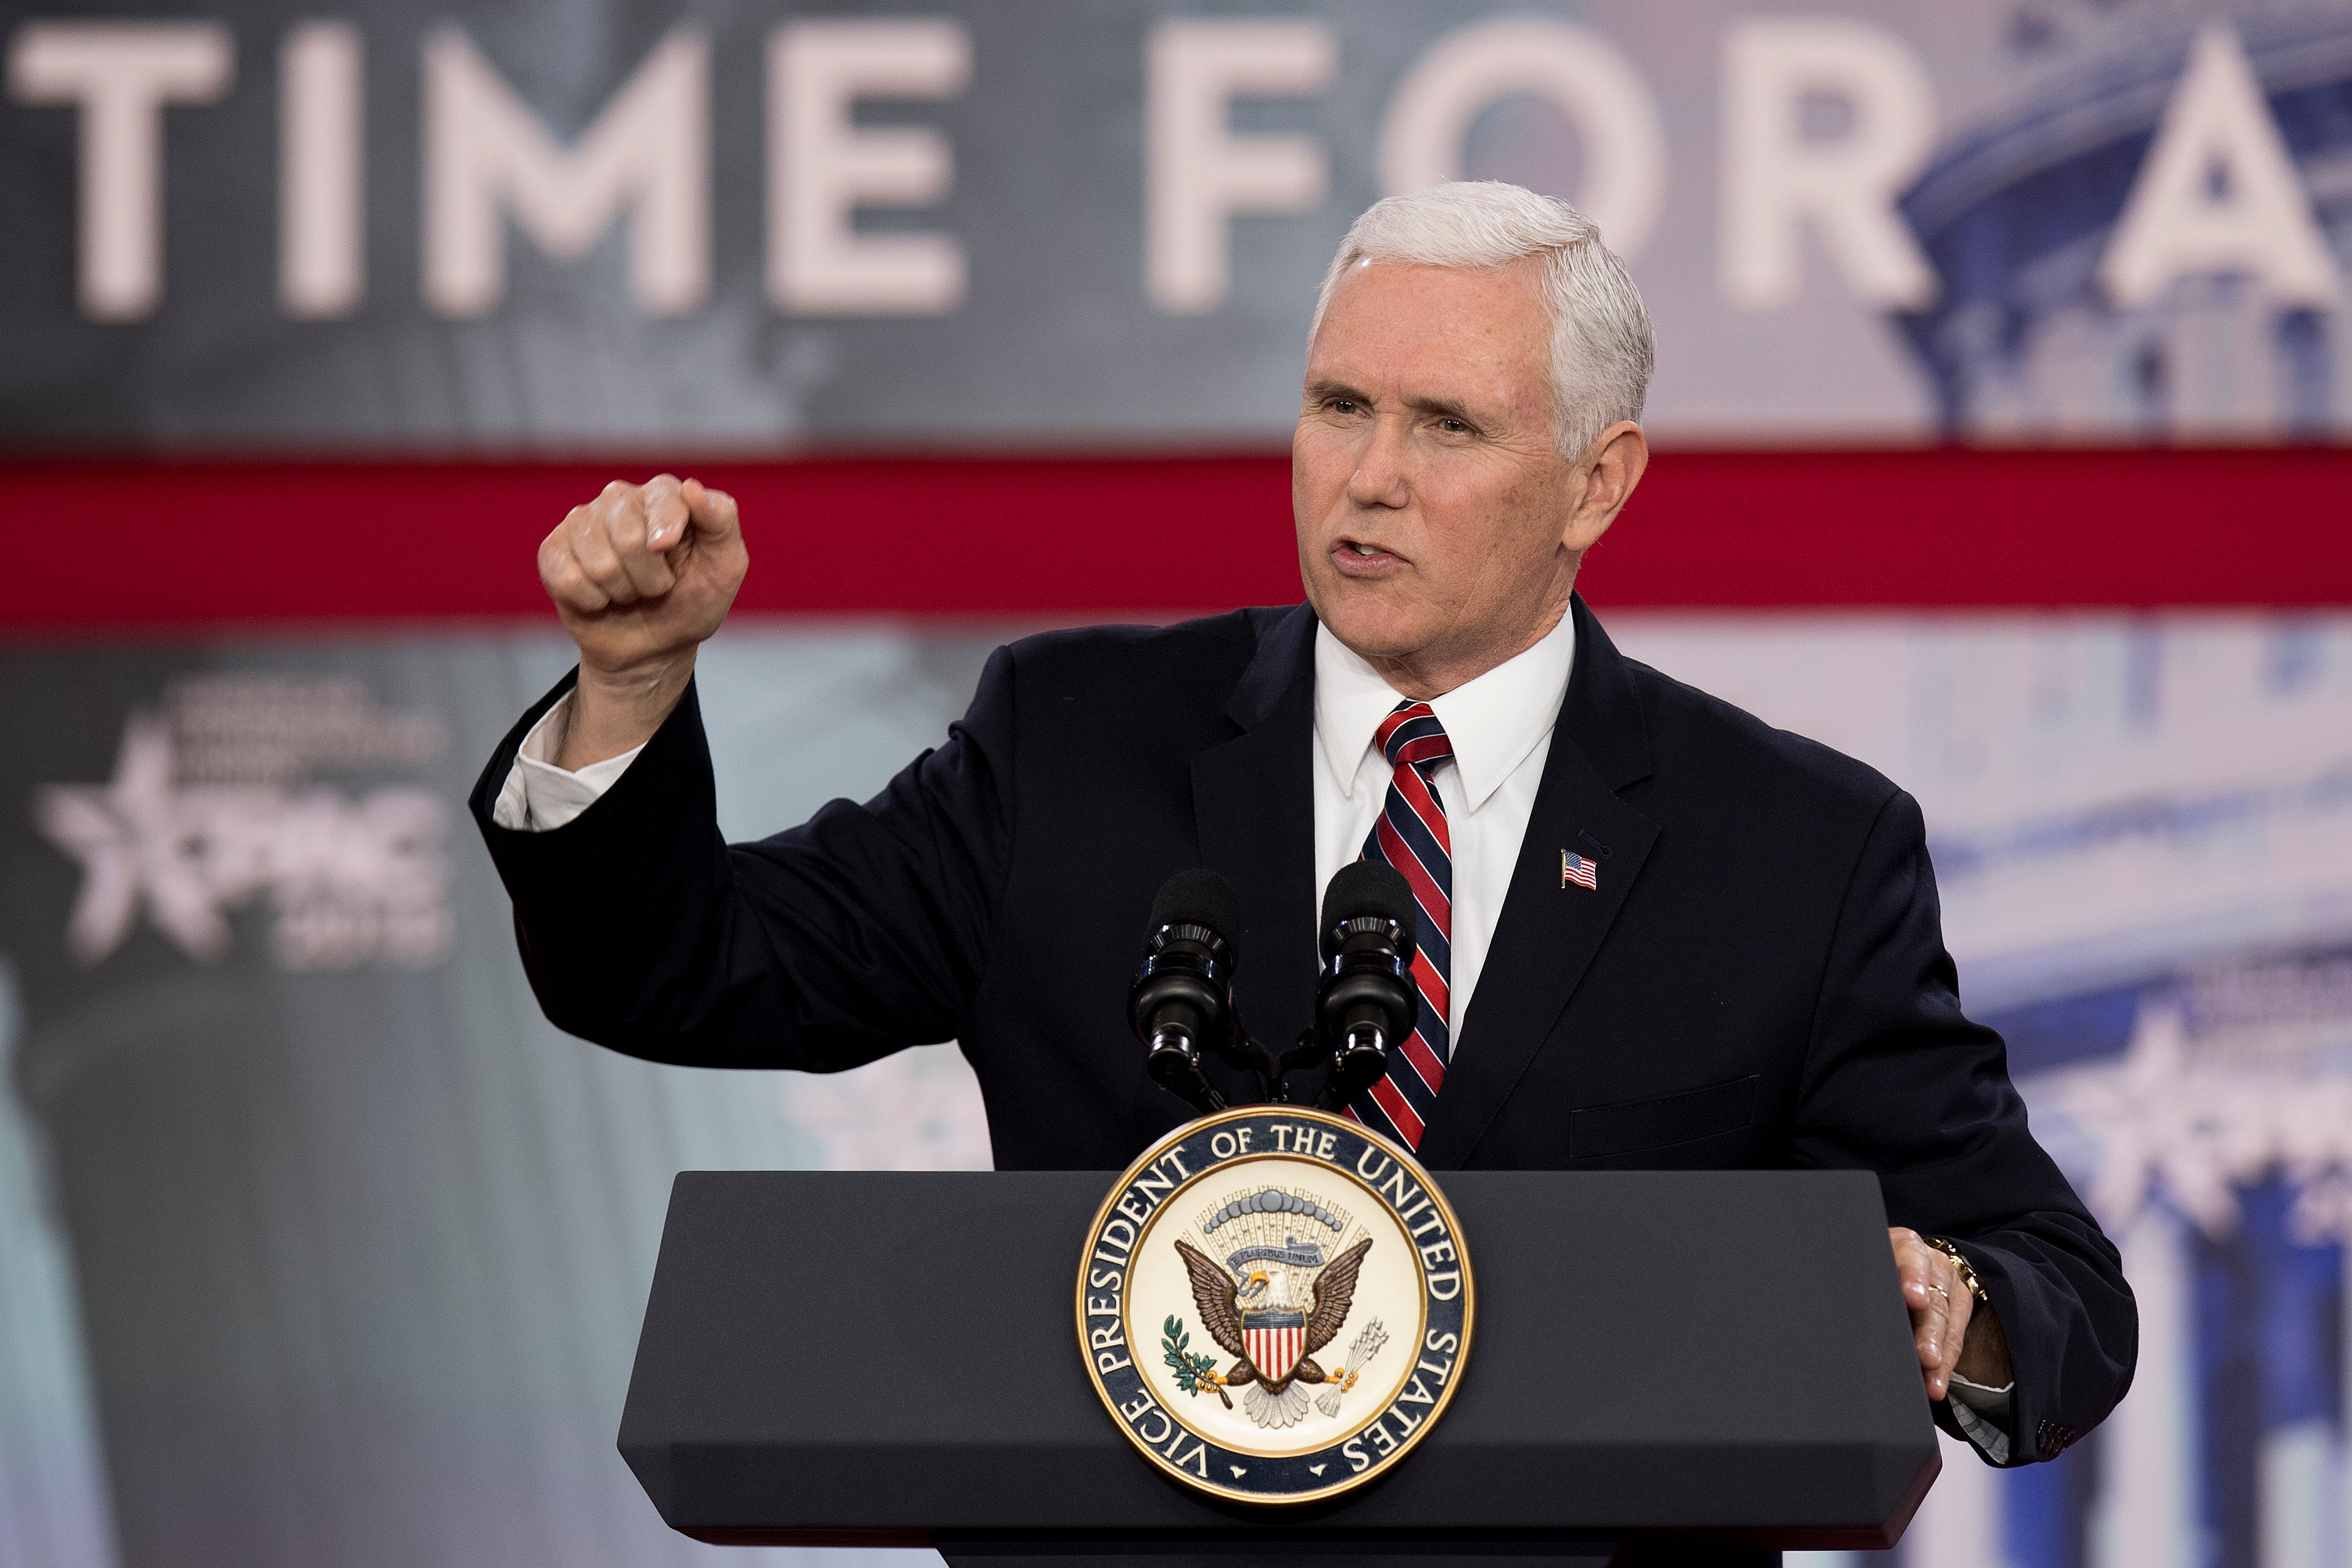 Vice President Mike Pence speaks during the 2018 Conservative Political Action Conference at National Harbor in Oxen Hill, Maryland on February 22, 2018